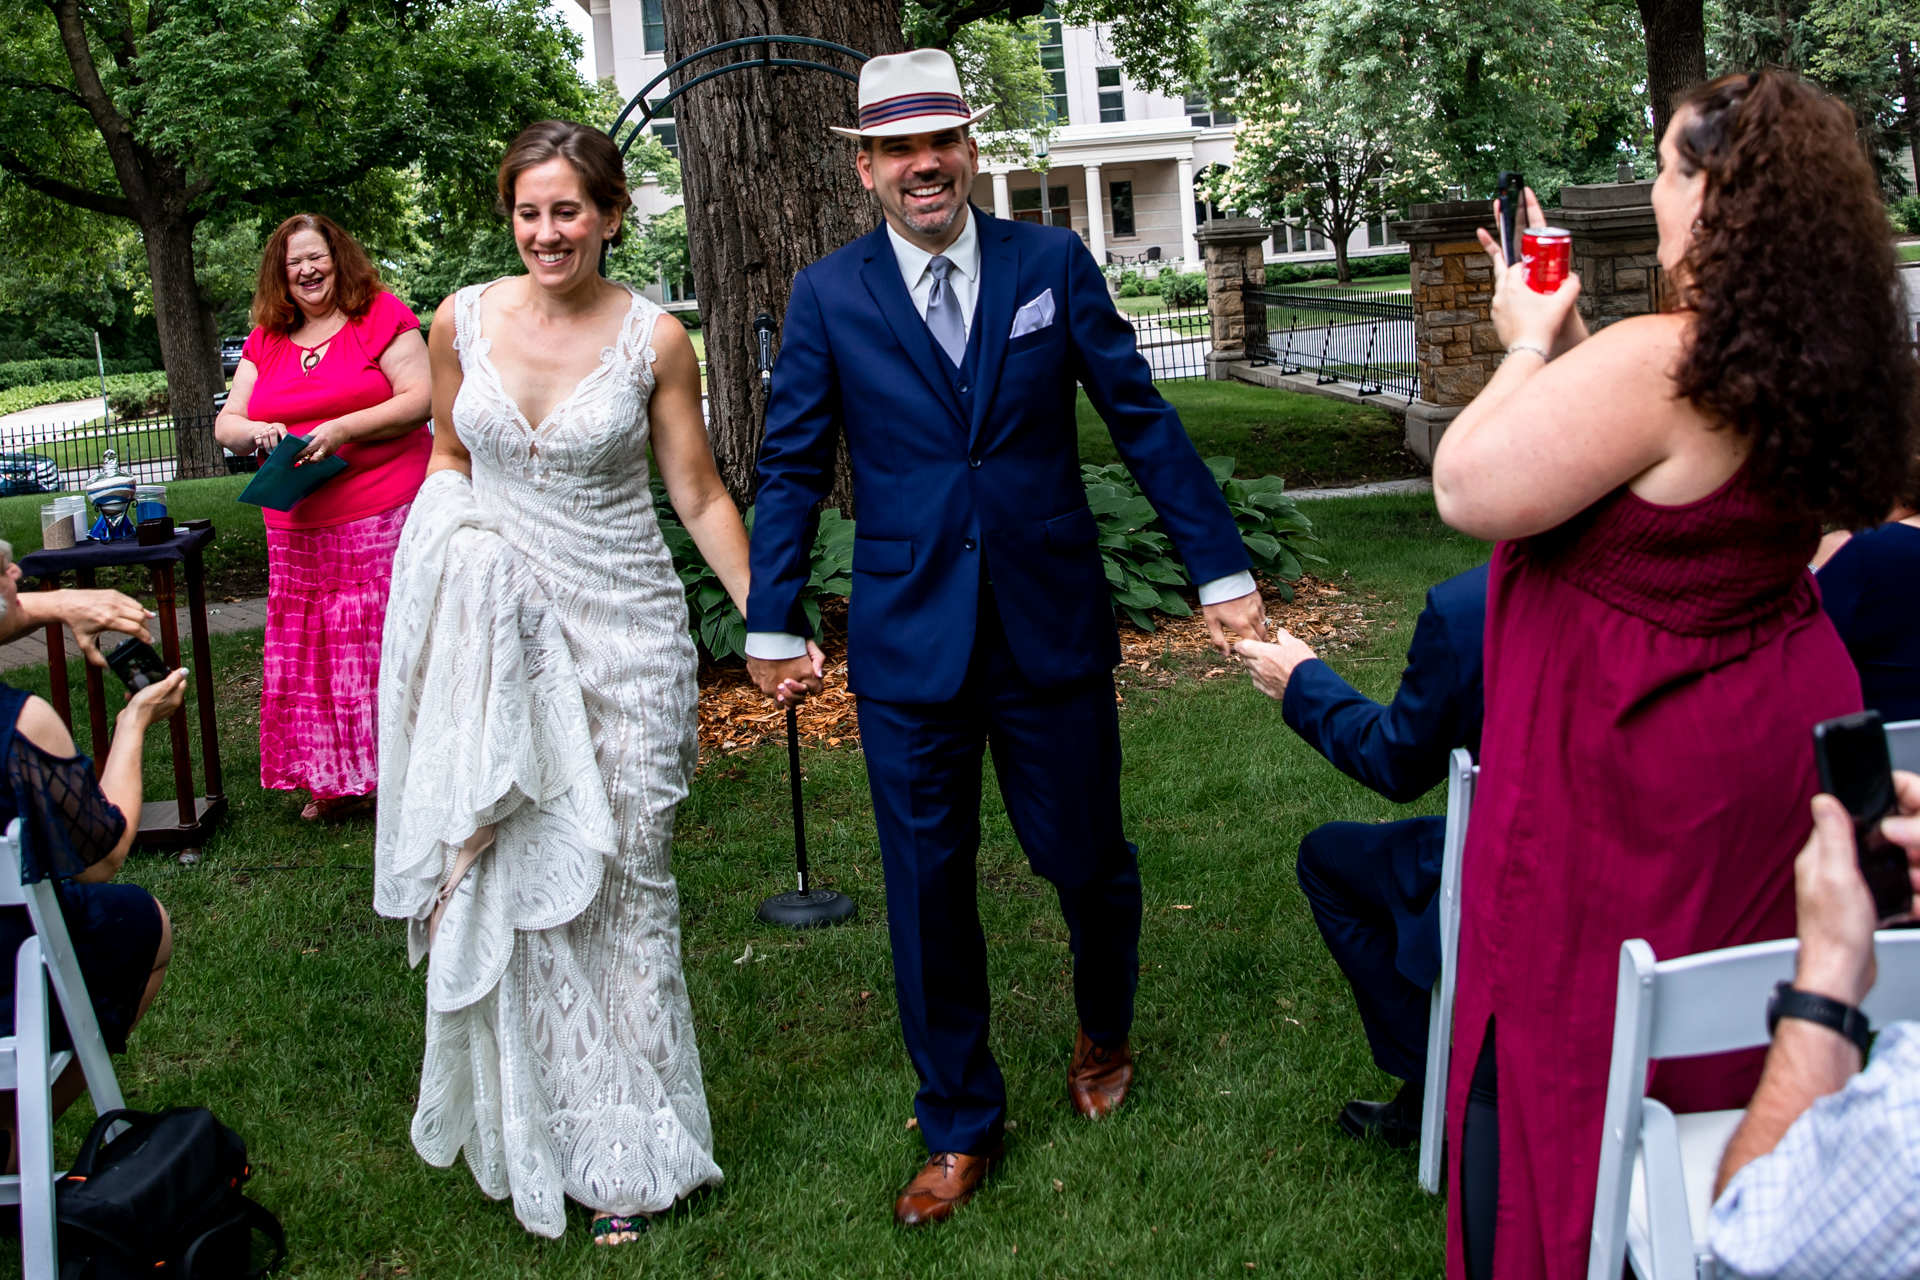 Wedding Photography from St. Paul, MN at Summit Manor | The newlyweds happily walk back down the aisle